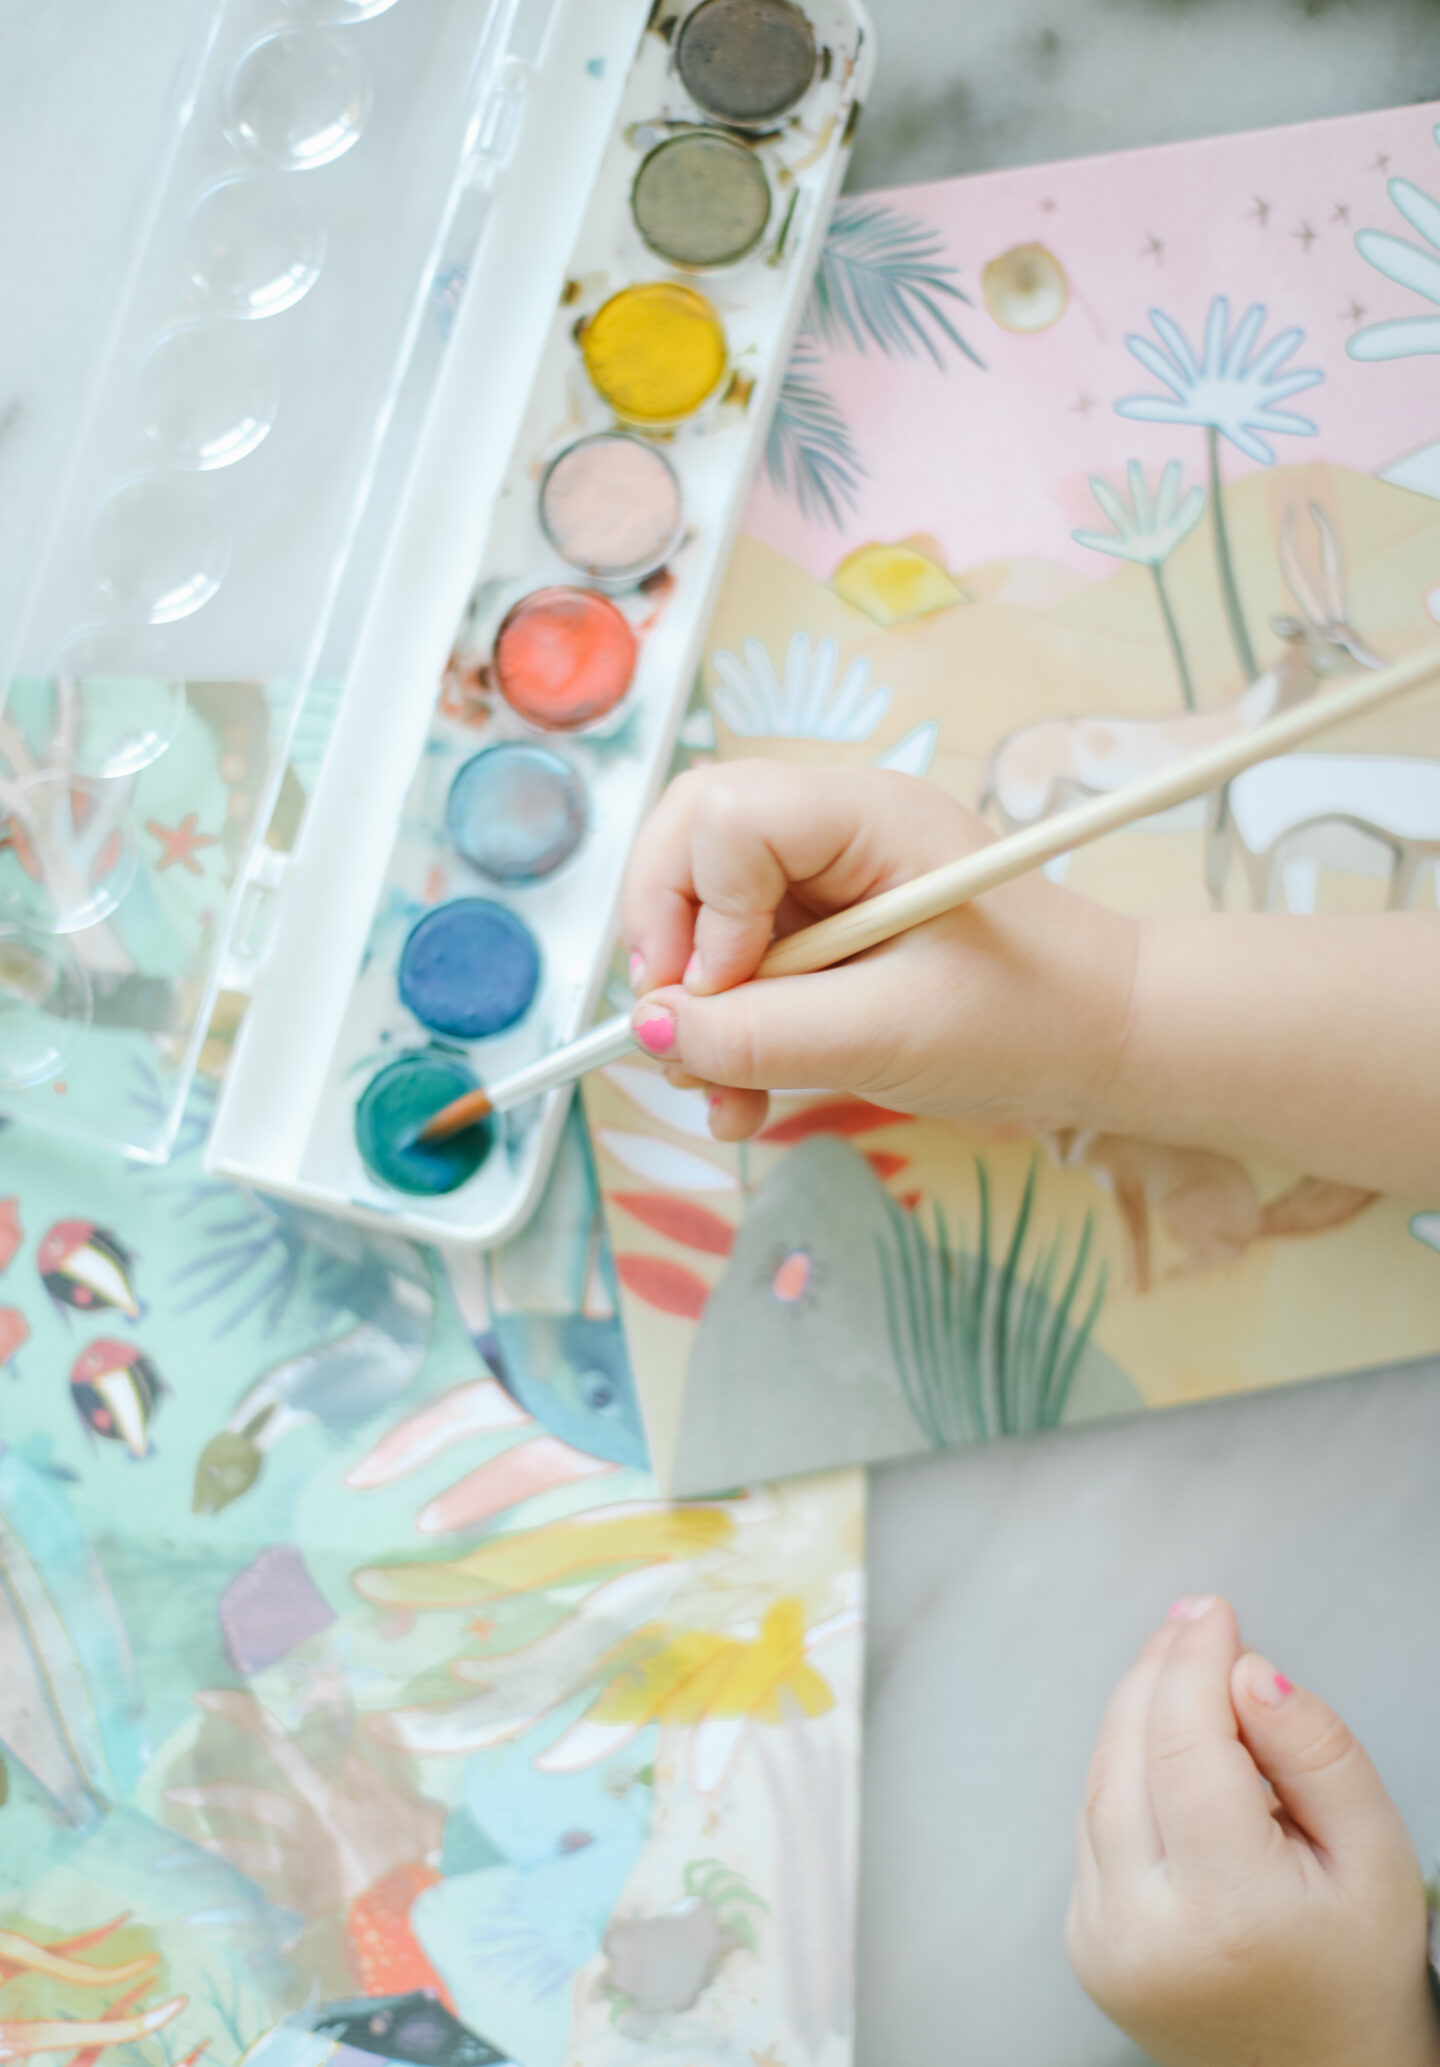 Kids art - how to create memories with their art